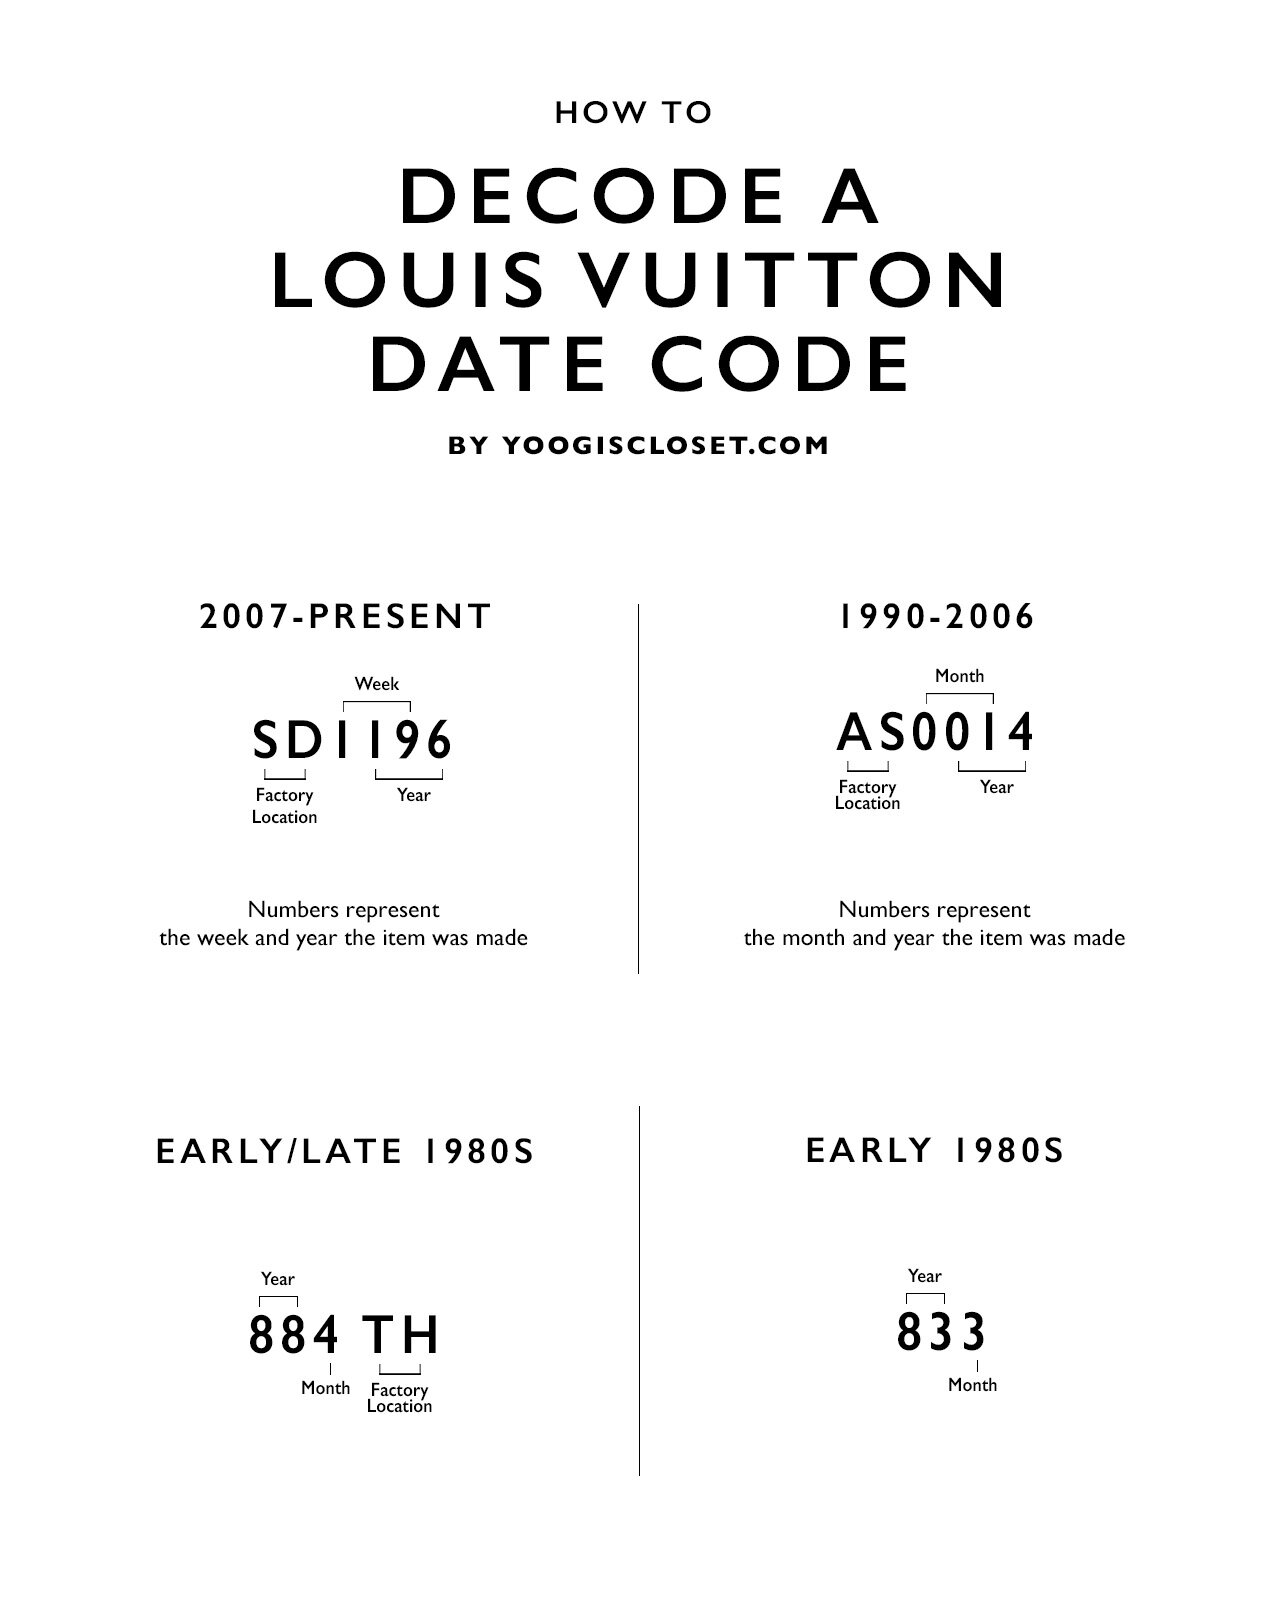 Date on to find a louis vuitton where code Louis Vuitton